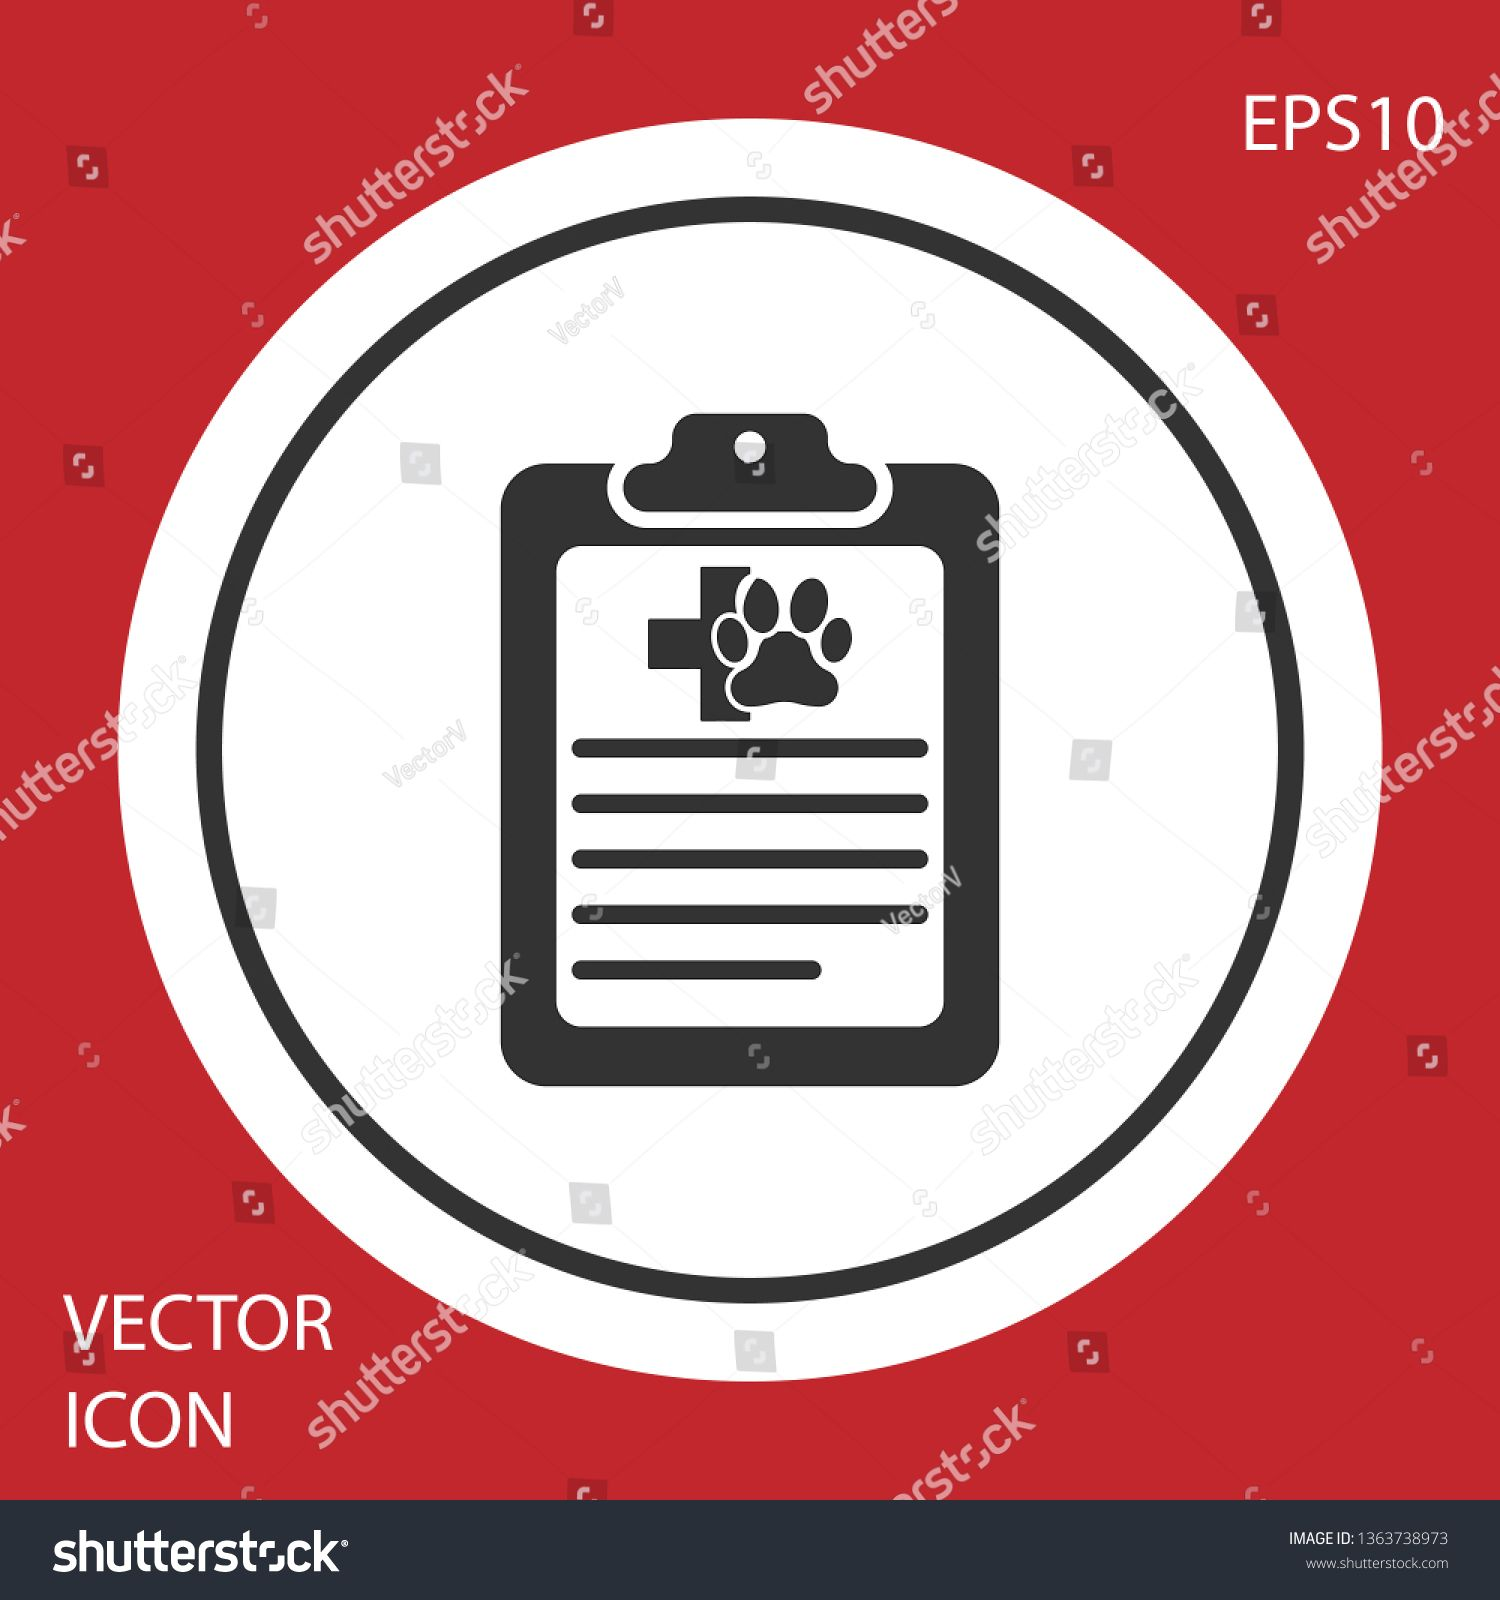 Grey Clipboard With Medical Clinical Record Pet Icon Isolated On